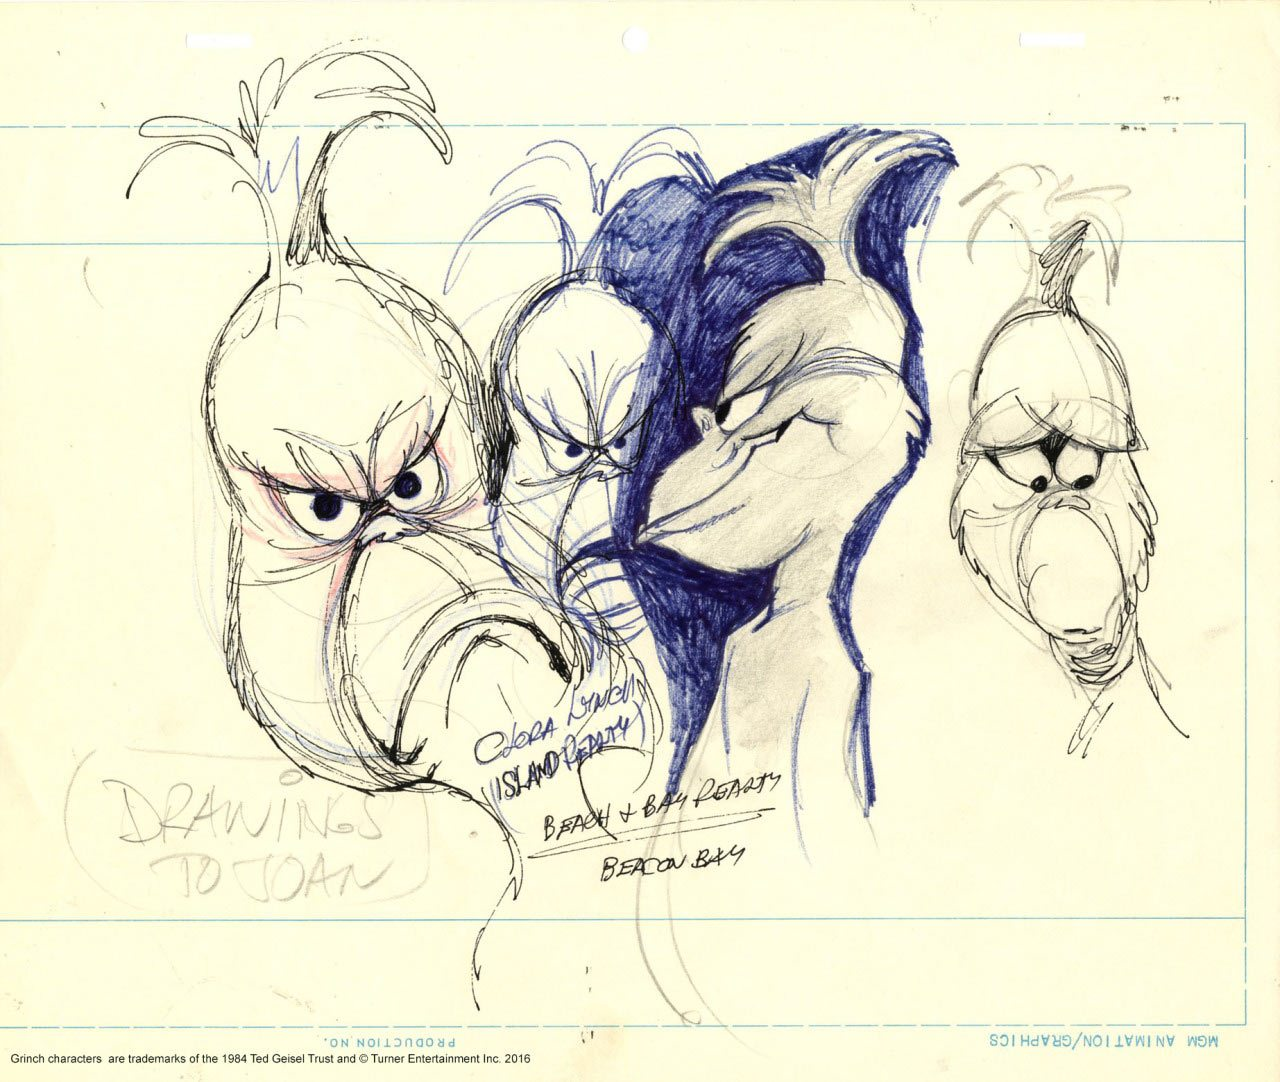 Grinch practice drawing by Chuck Jones.